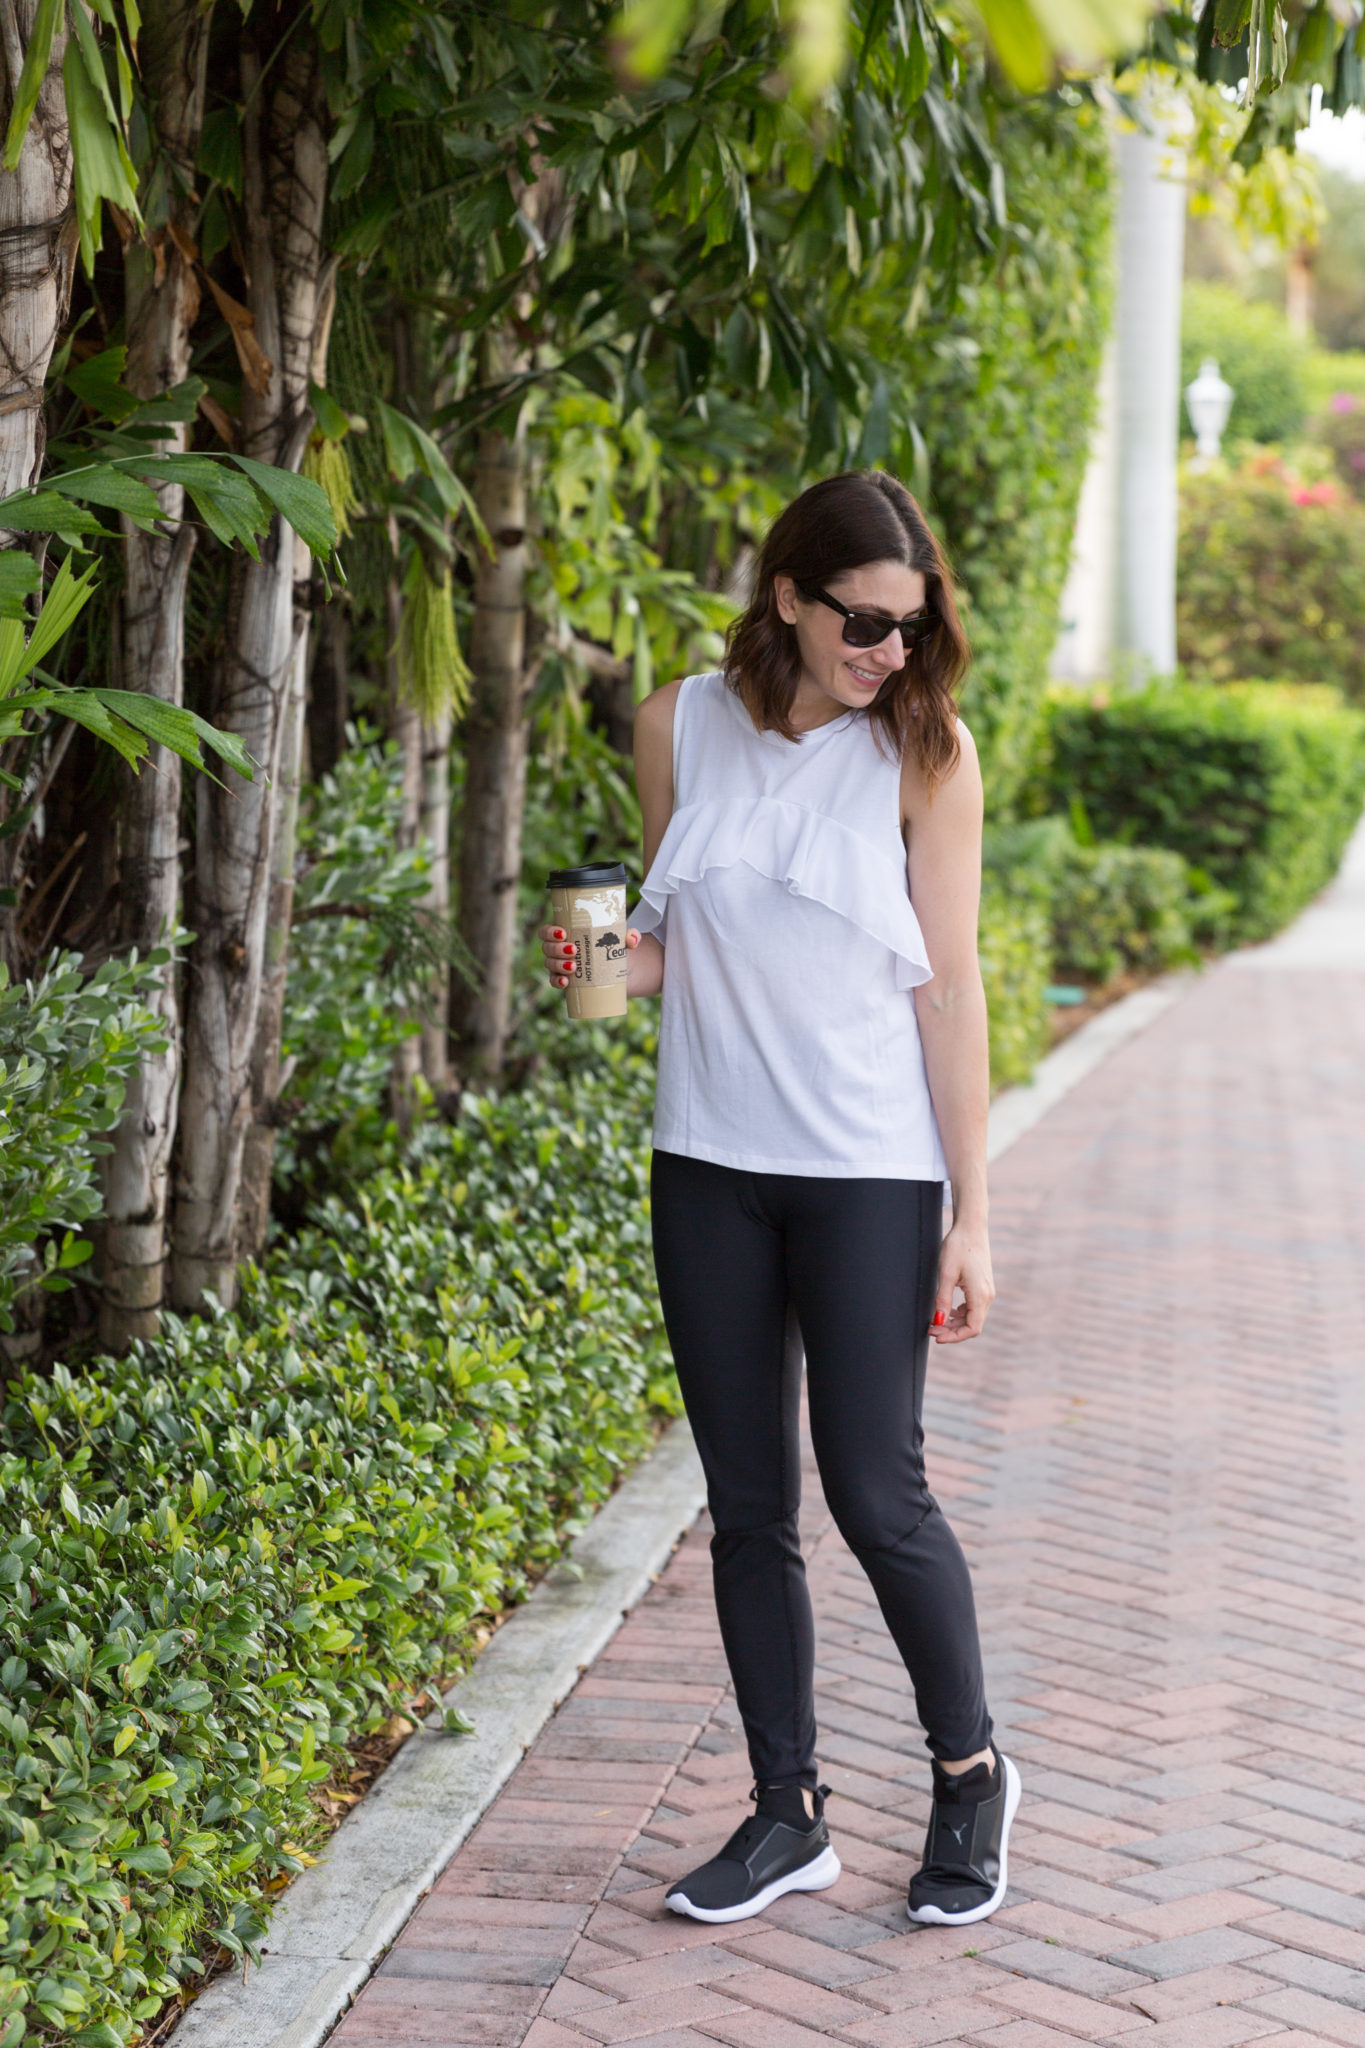 what to do and where to stay in delray beach florida | summer toddler style | summer style | beach style | west palm beach flordia | seagate hotel delray beach florida | family vacation with a toddler | my take on athleisure | how to style an athleisure outfit | puma rebel mid women's shoes on allweareblog.com